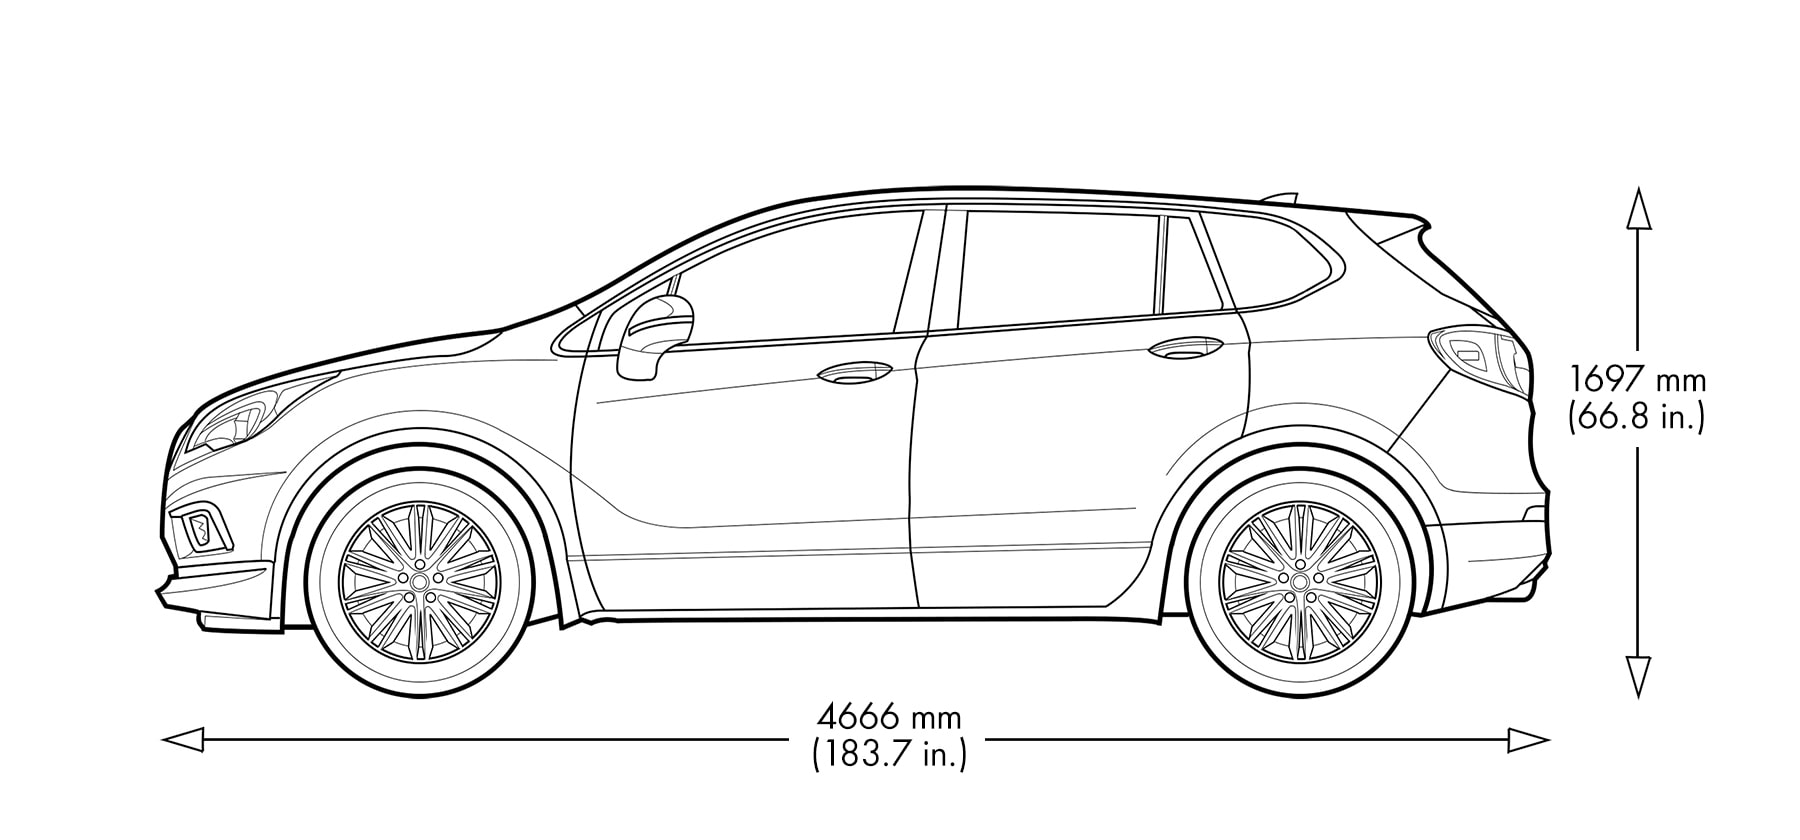 Diagram image of the 2019 Buick Envision compact luxury SUV.